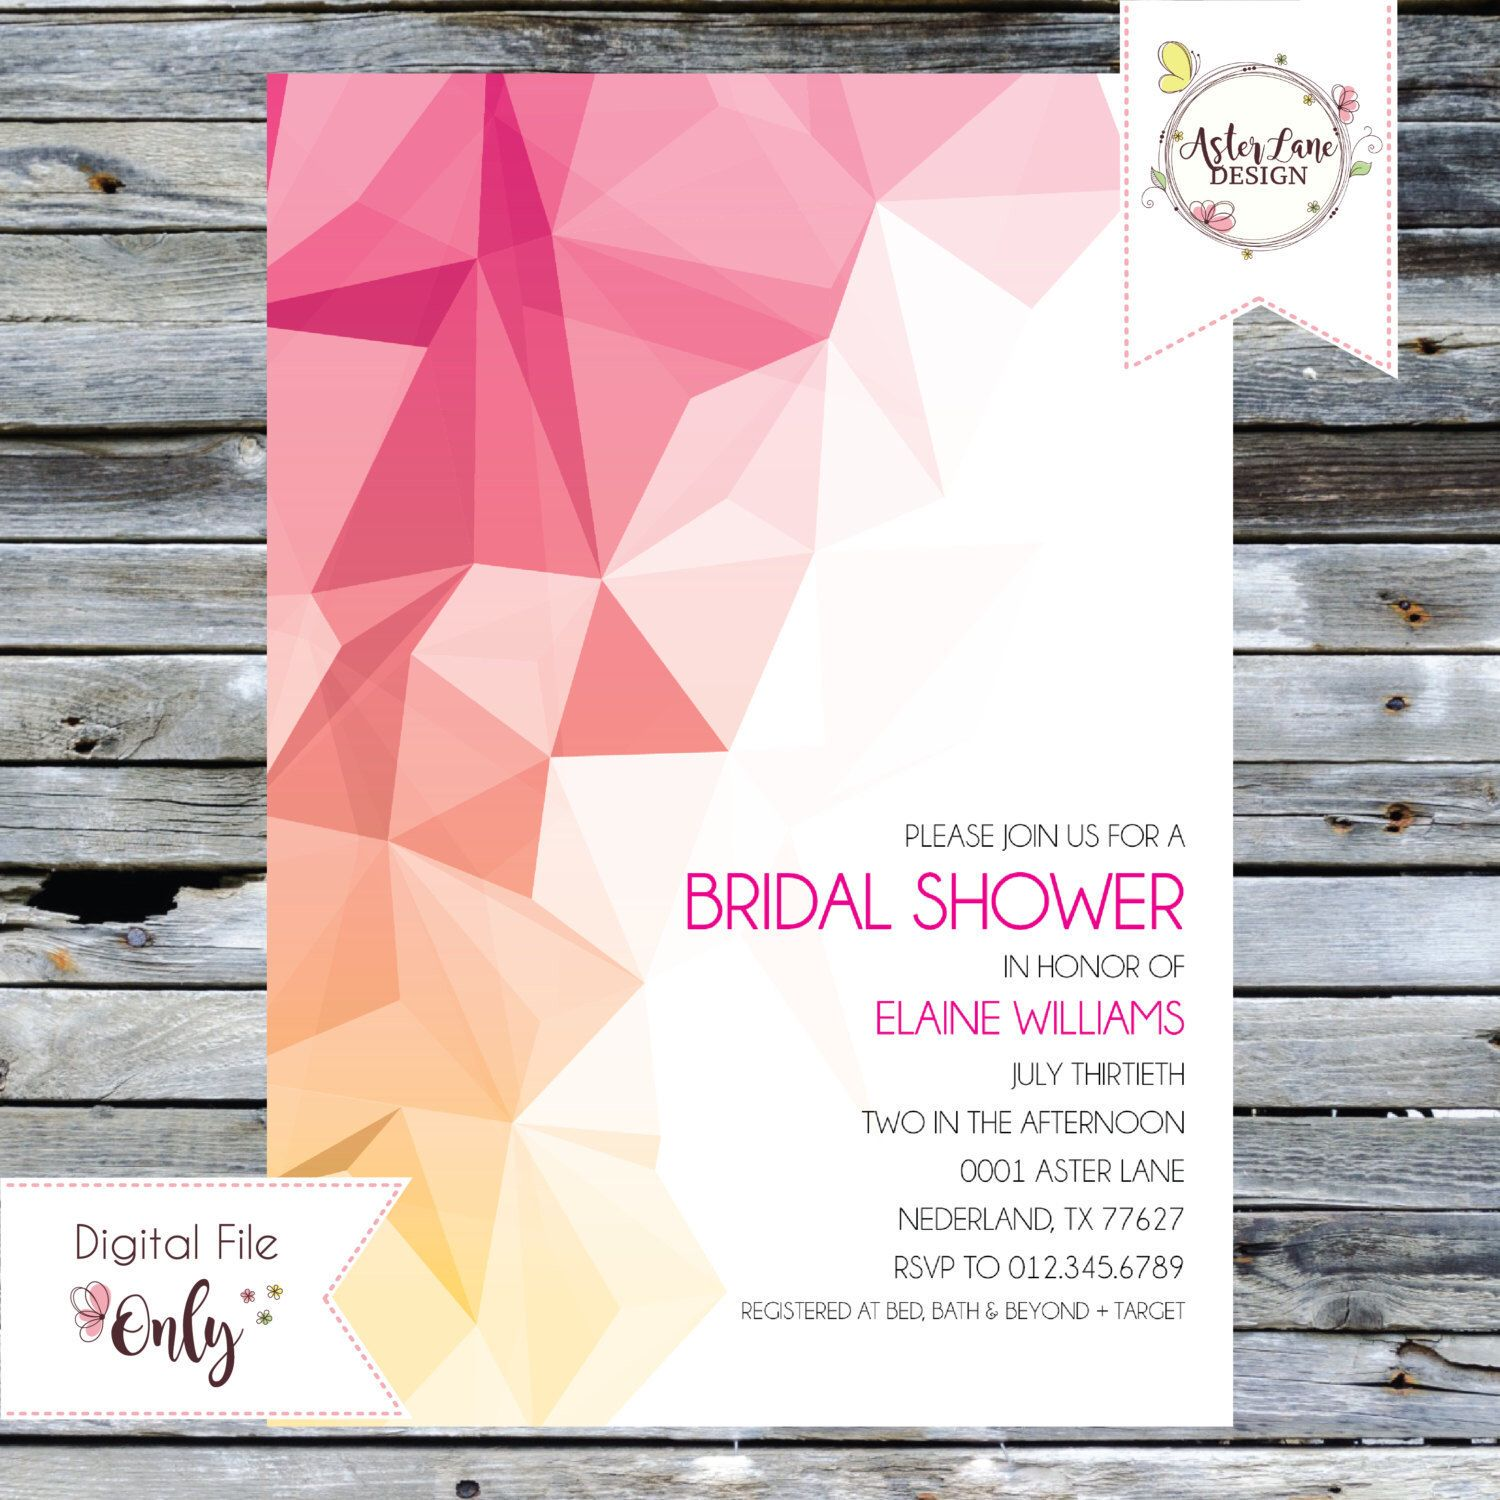 Bridal Shower Invitation // Colored Abstract Invitation // Personalized Printable Invitation by AsterLaneDesign on Etsy https://www.etsy.com/listing/421222699/bridal-shower-invitation-colored